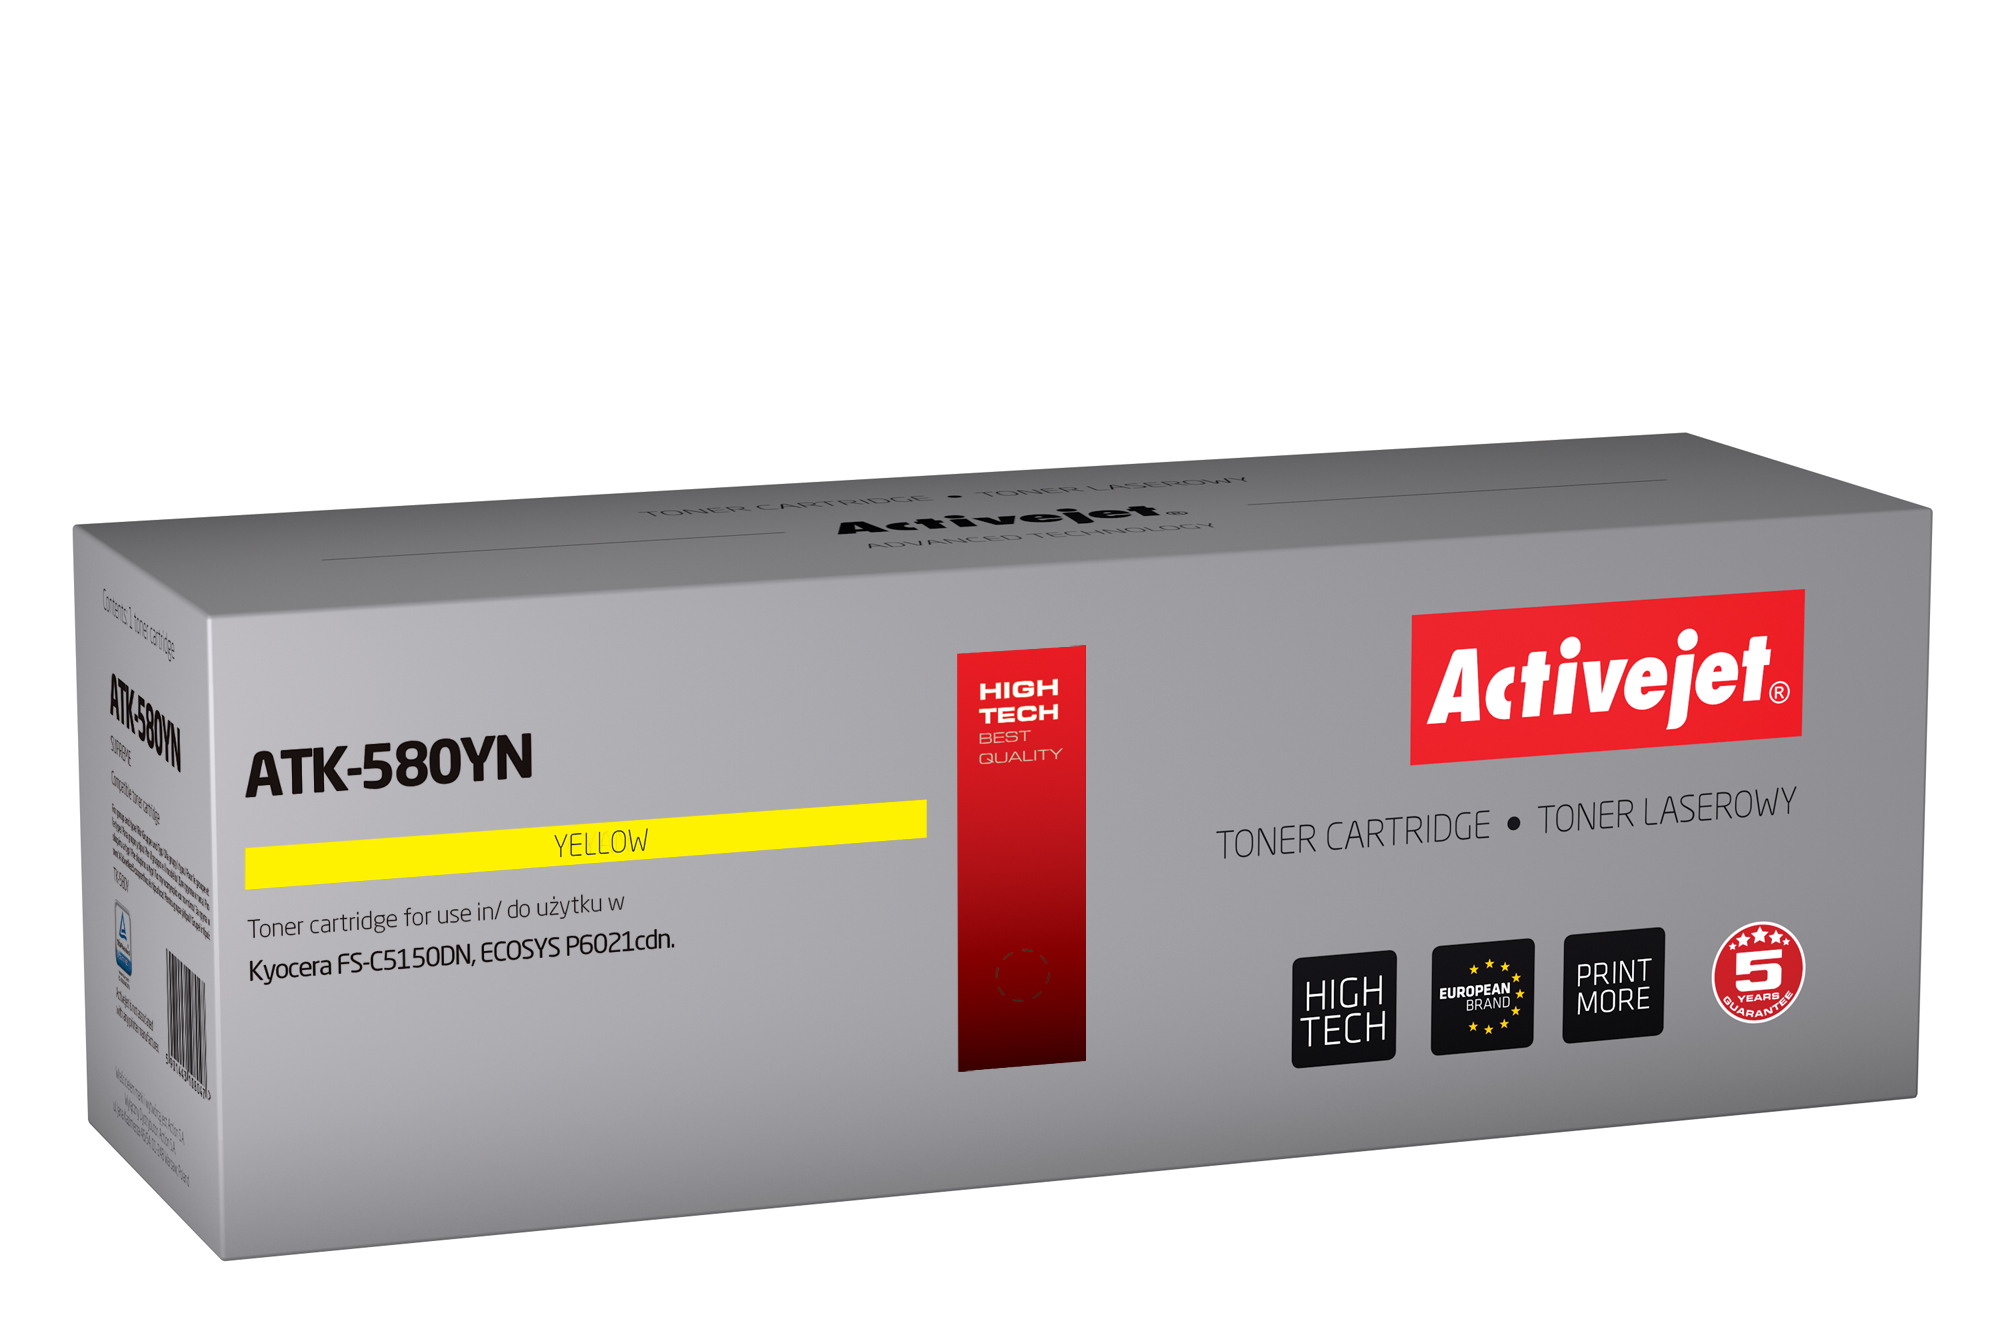 Activejet toner do Kyocera TK-580Y new ATK-580YN